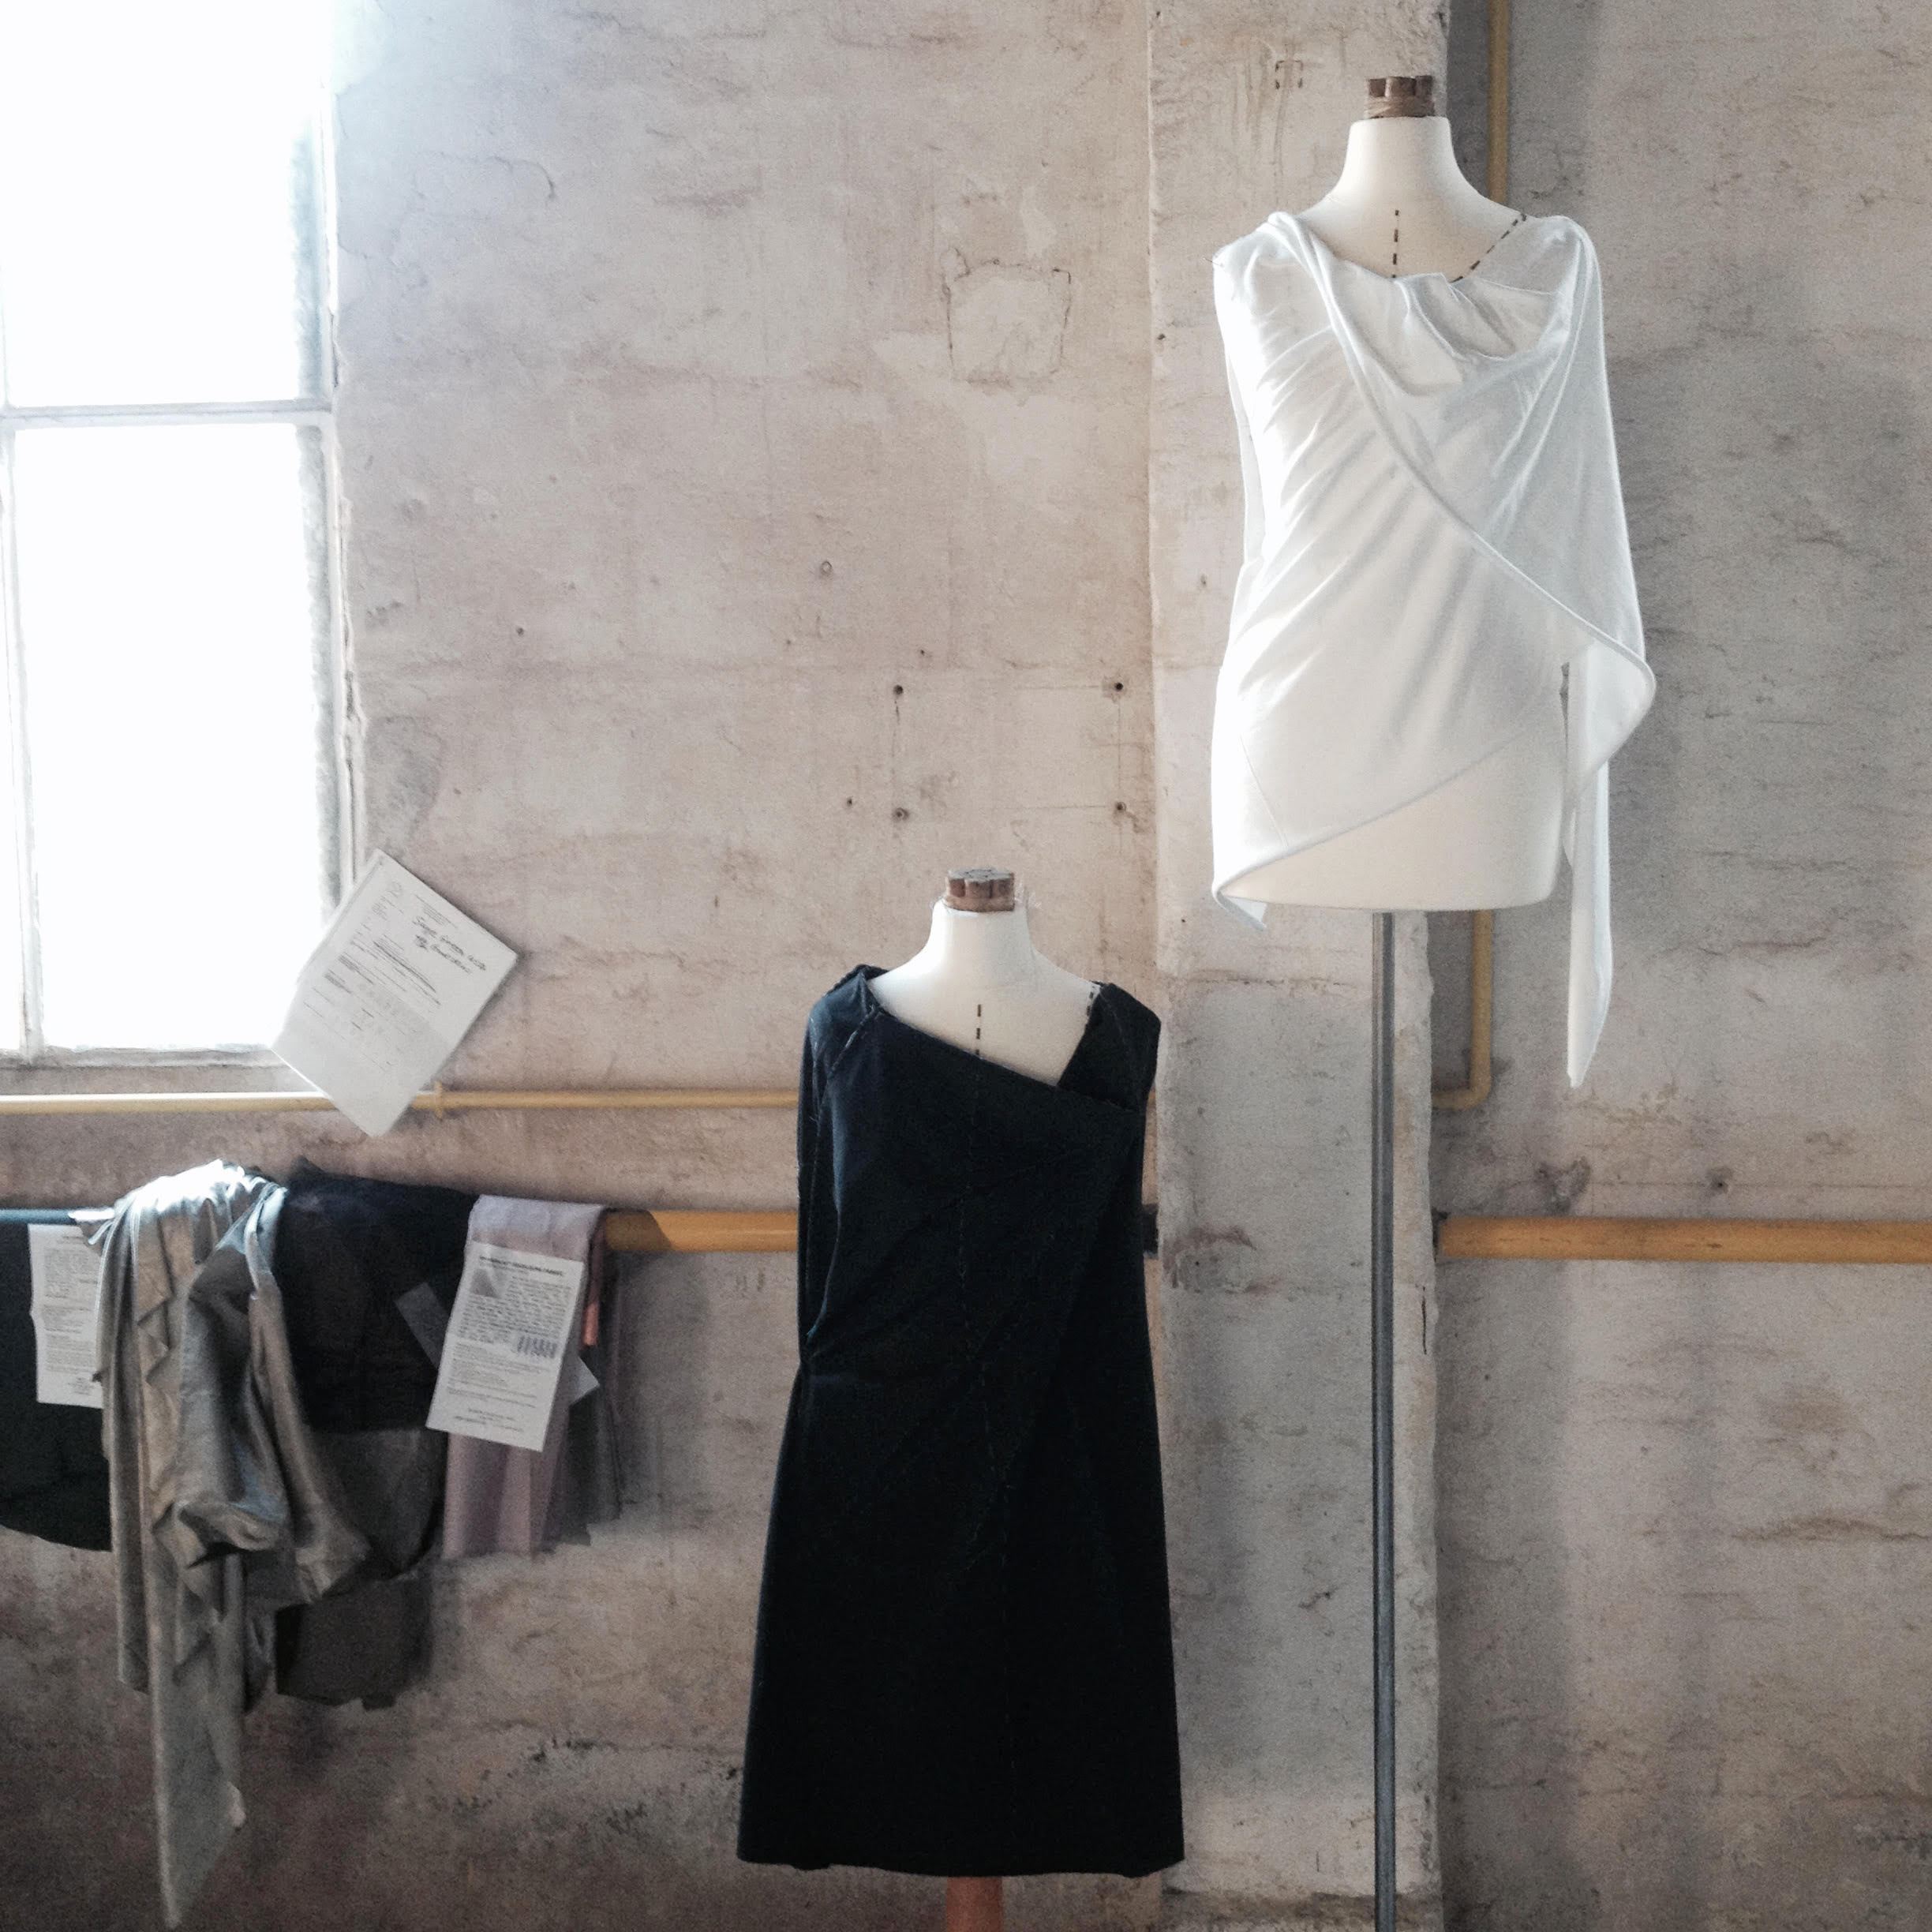 introduction to draping workshop led by Rachel Freire